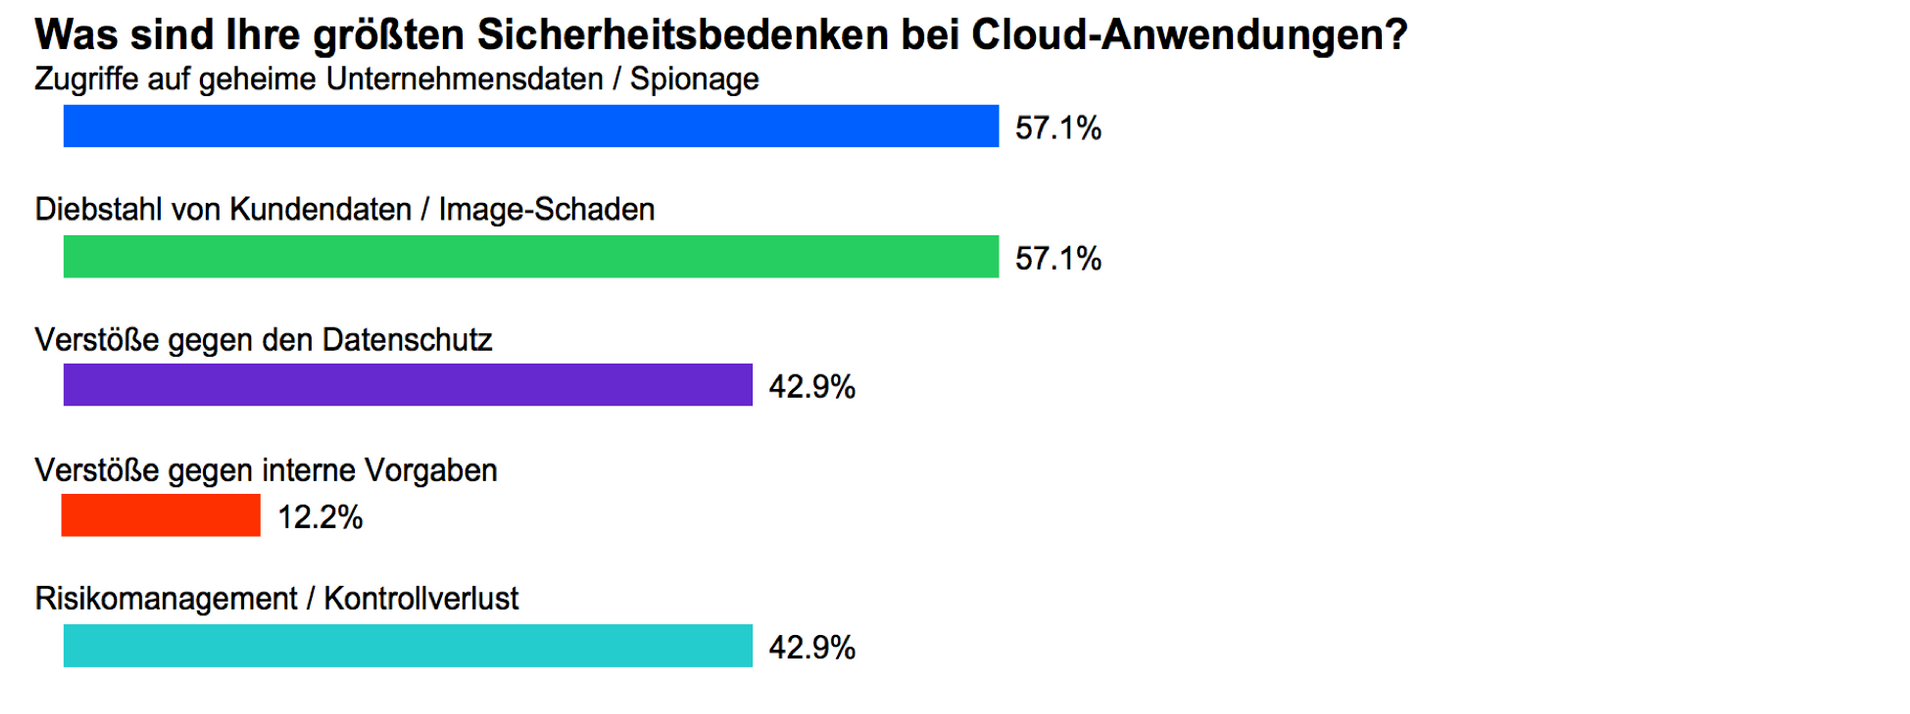 Cloud Security Sicherheitsbedenken